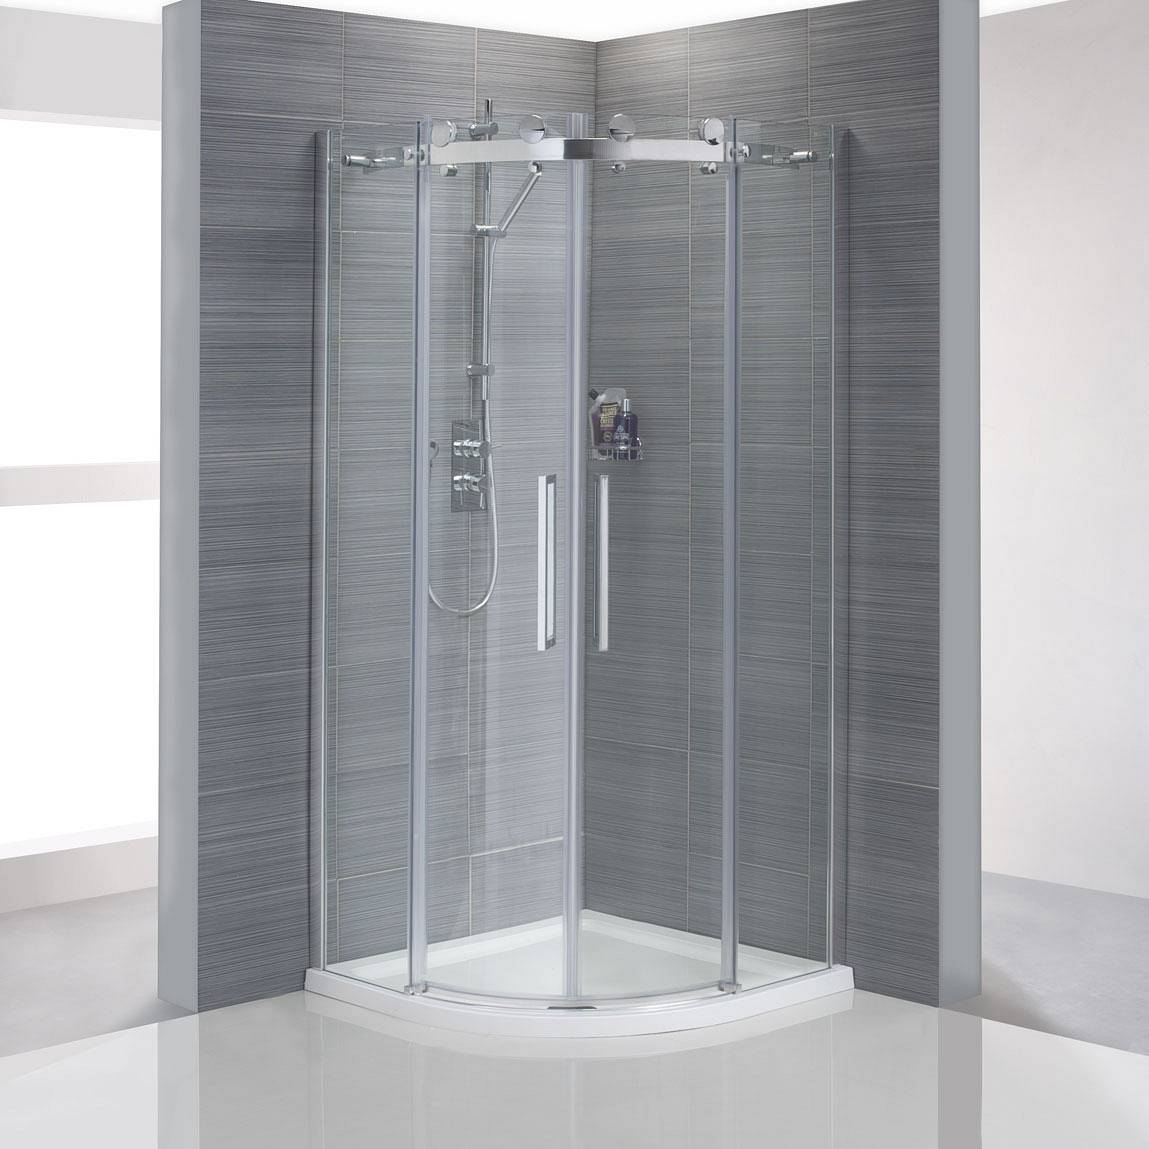 Why Quadrant Shower Enclosures are the Best Choice for Compact ...